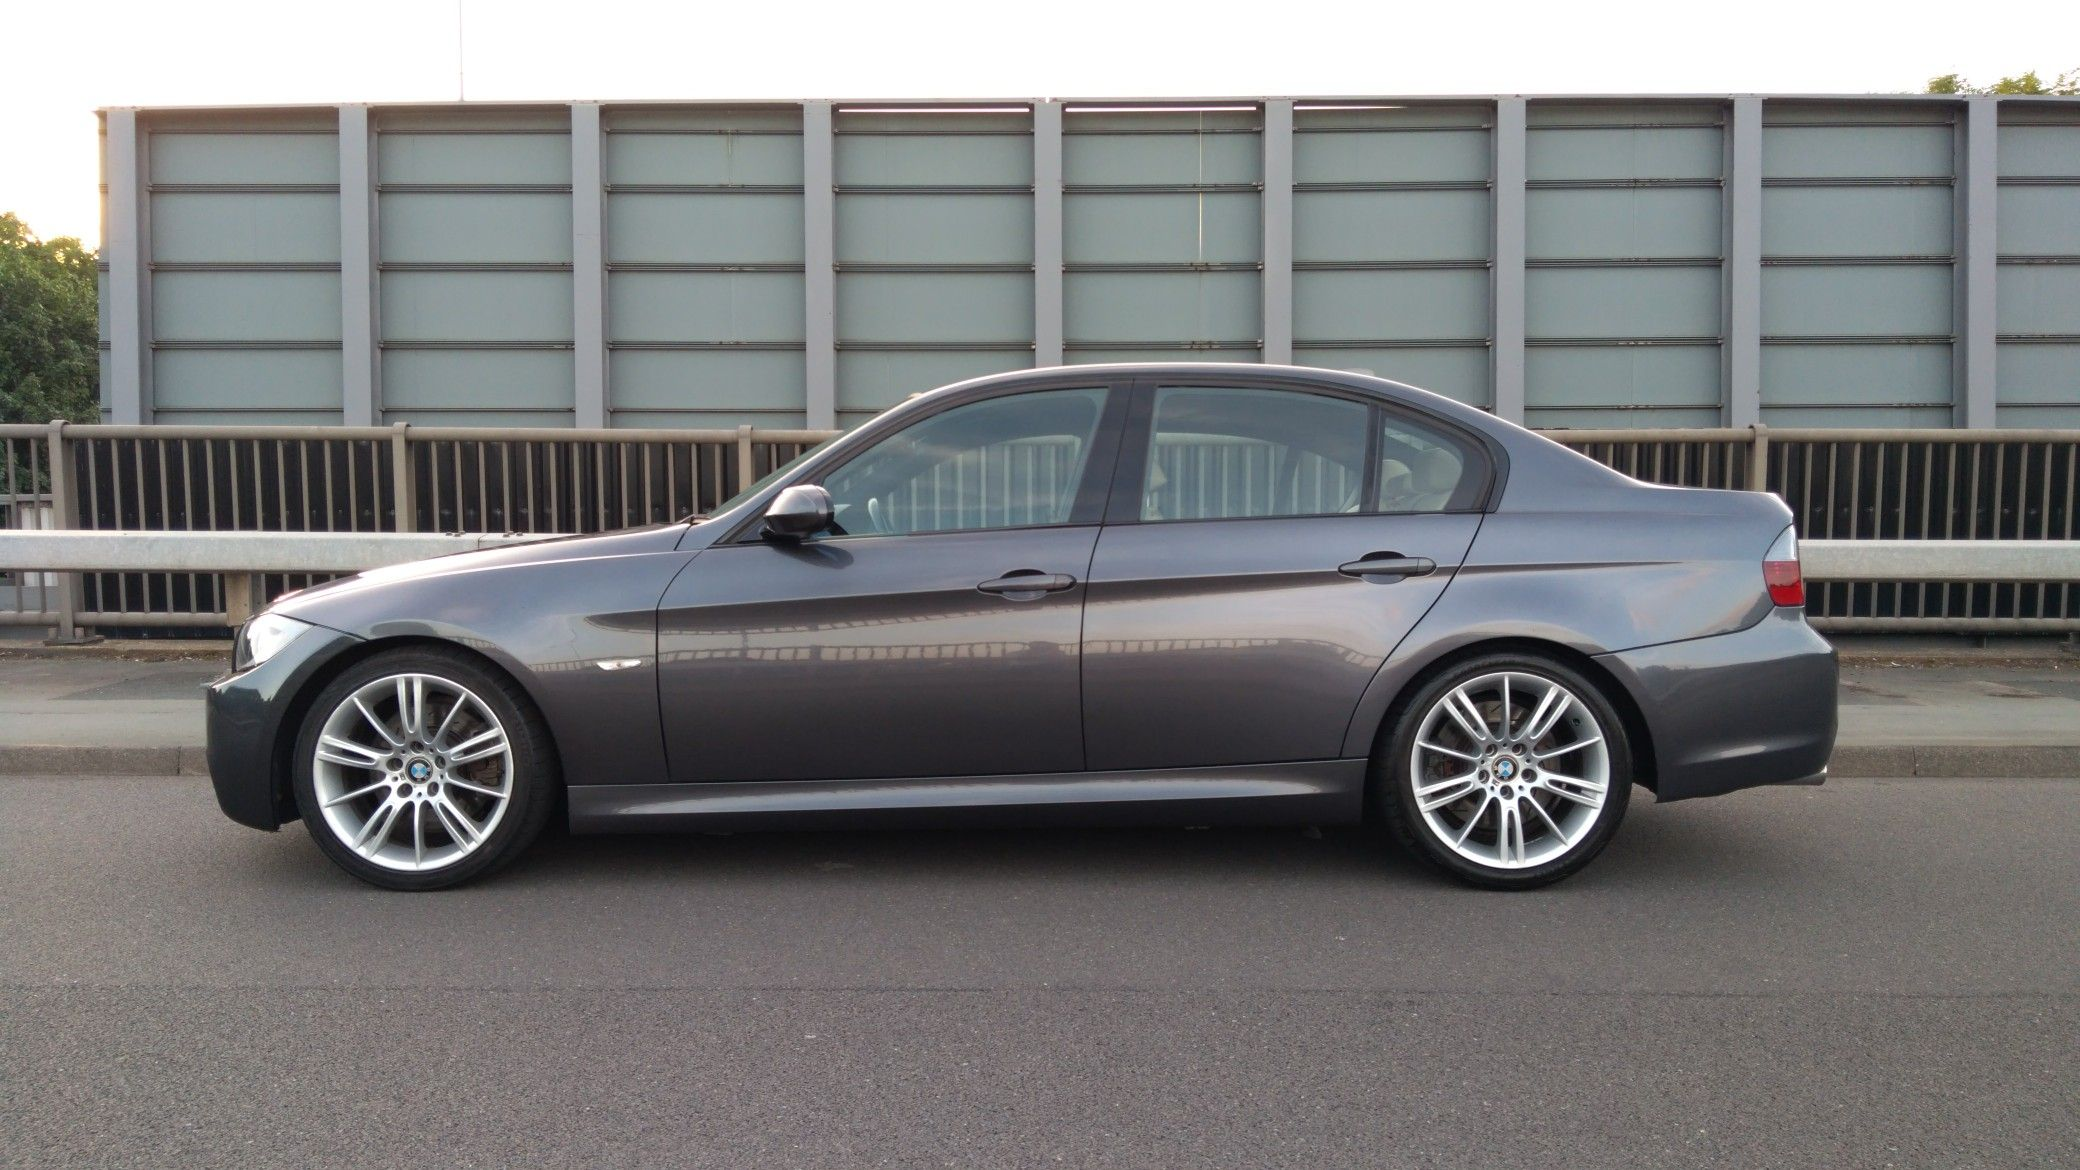 Bmw E90 M Sport Msport 330i With Images Bmw Bmw Wheels